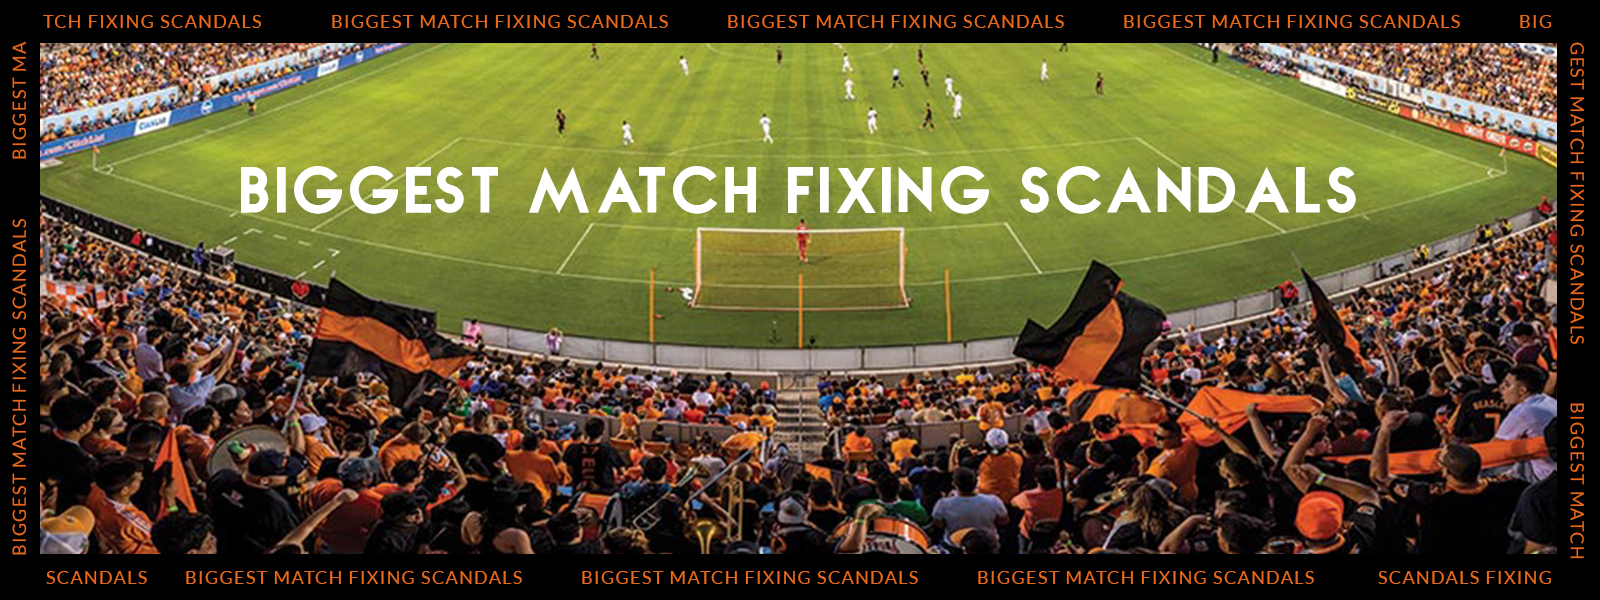 History Biggest Match Fixing Scandals [Infographic]